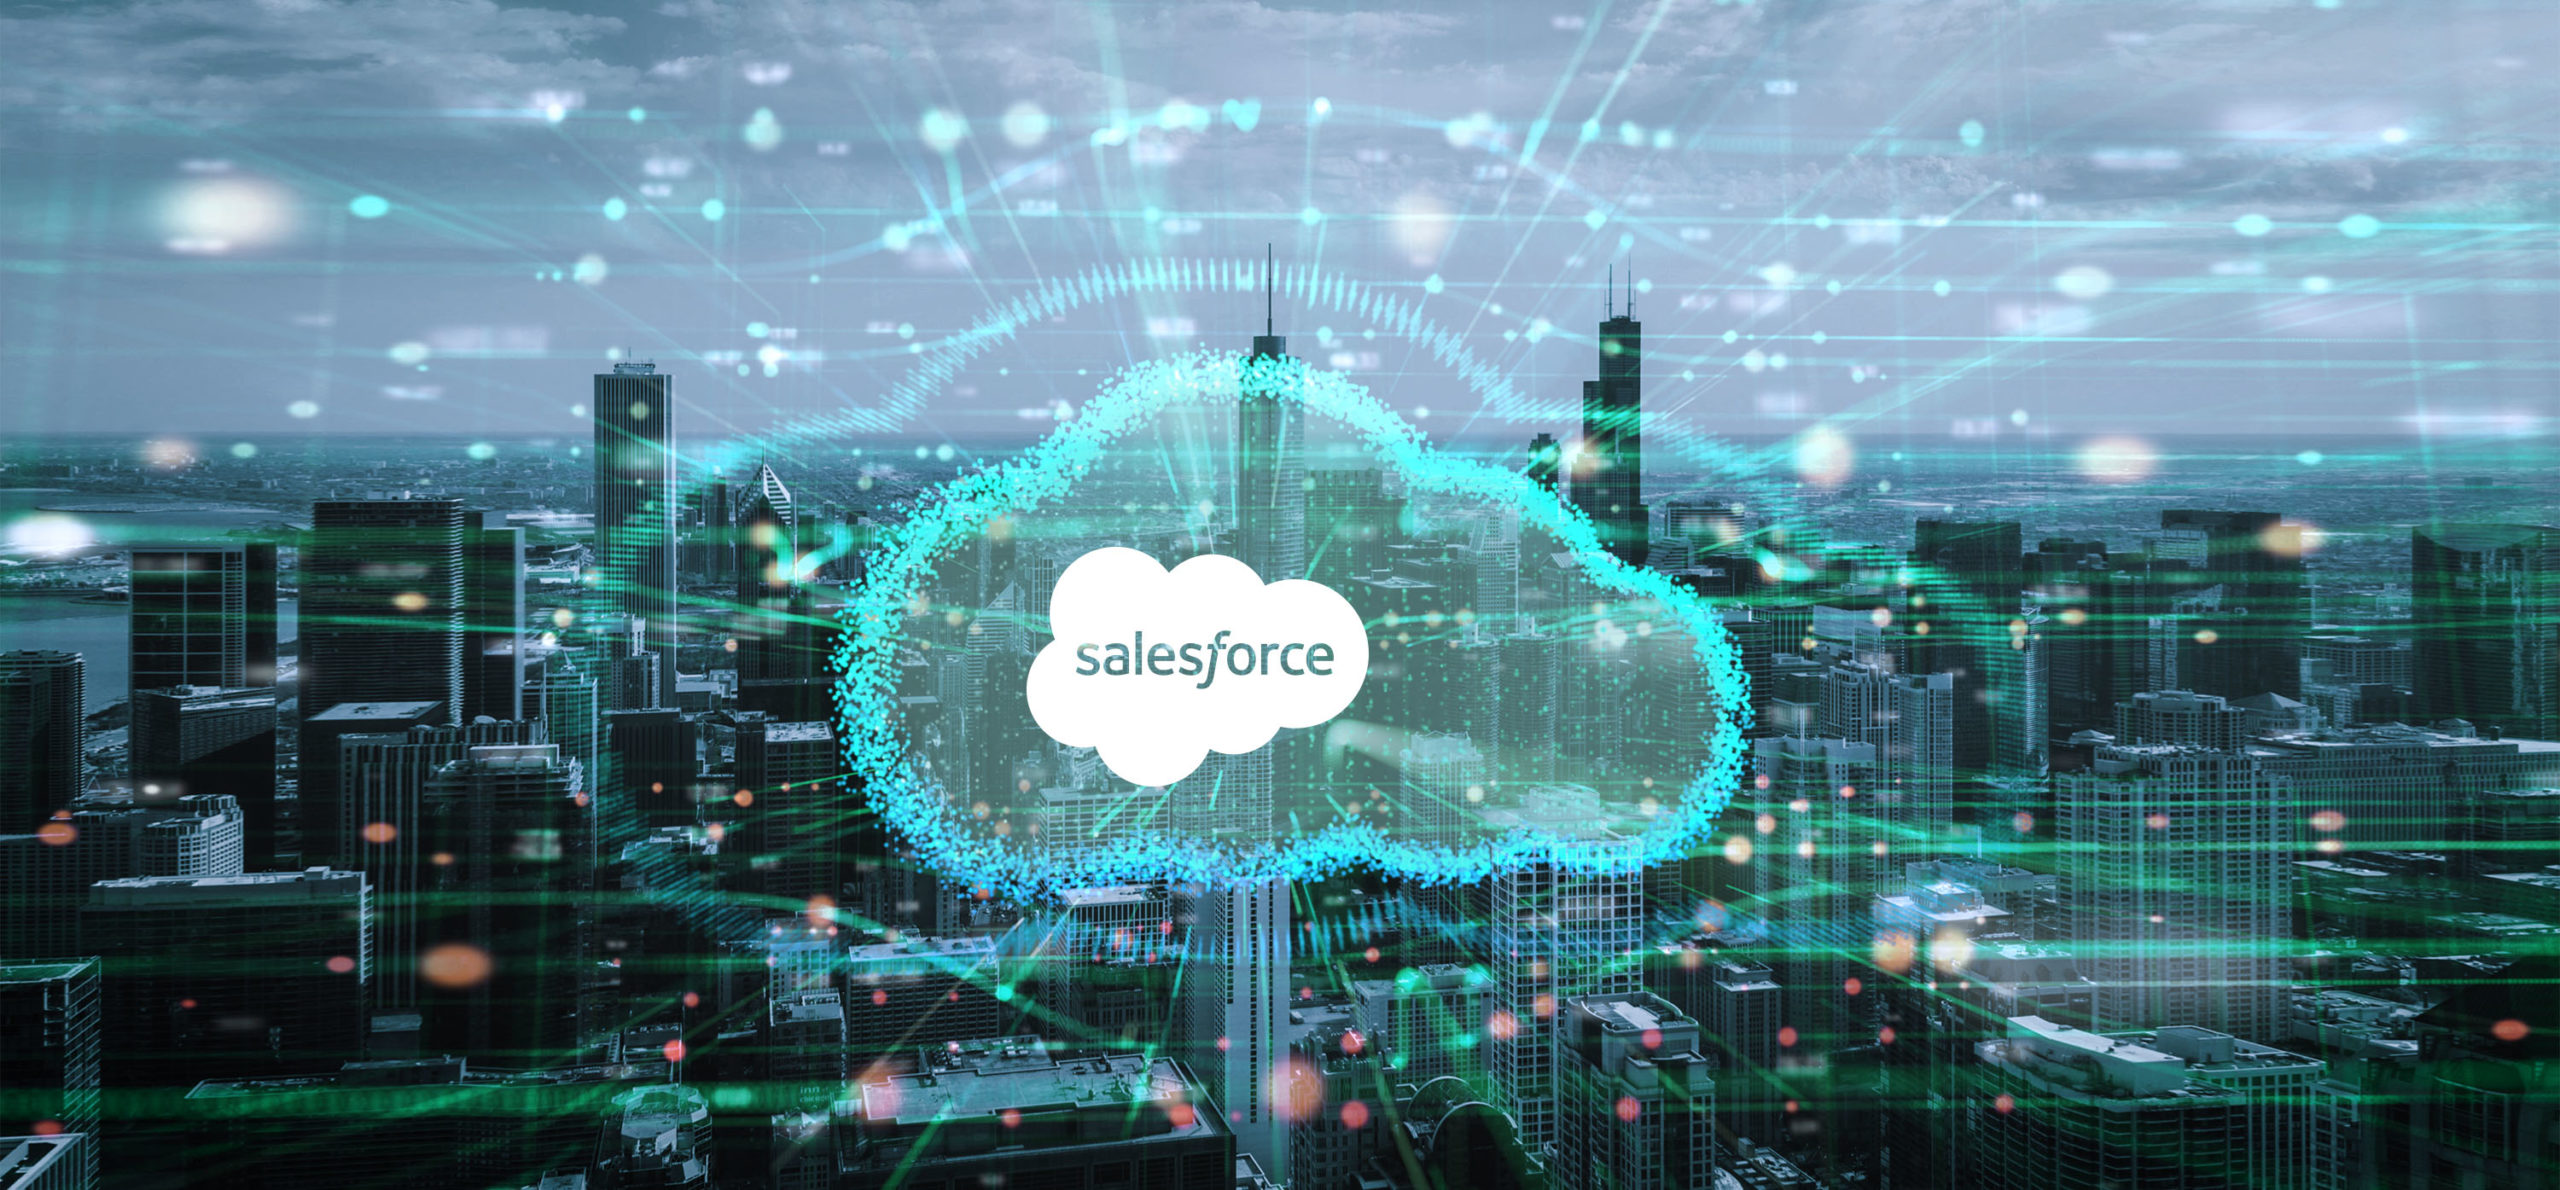 Picture shows City Salesforce in Cloud